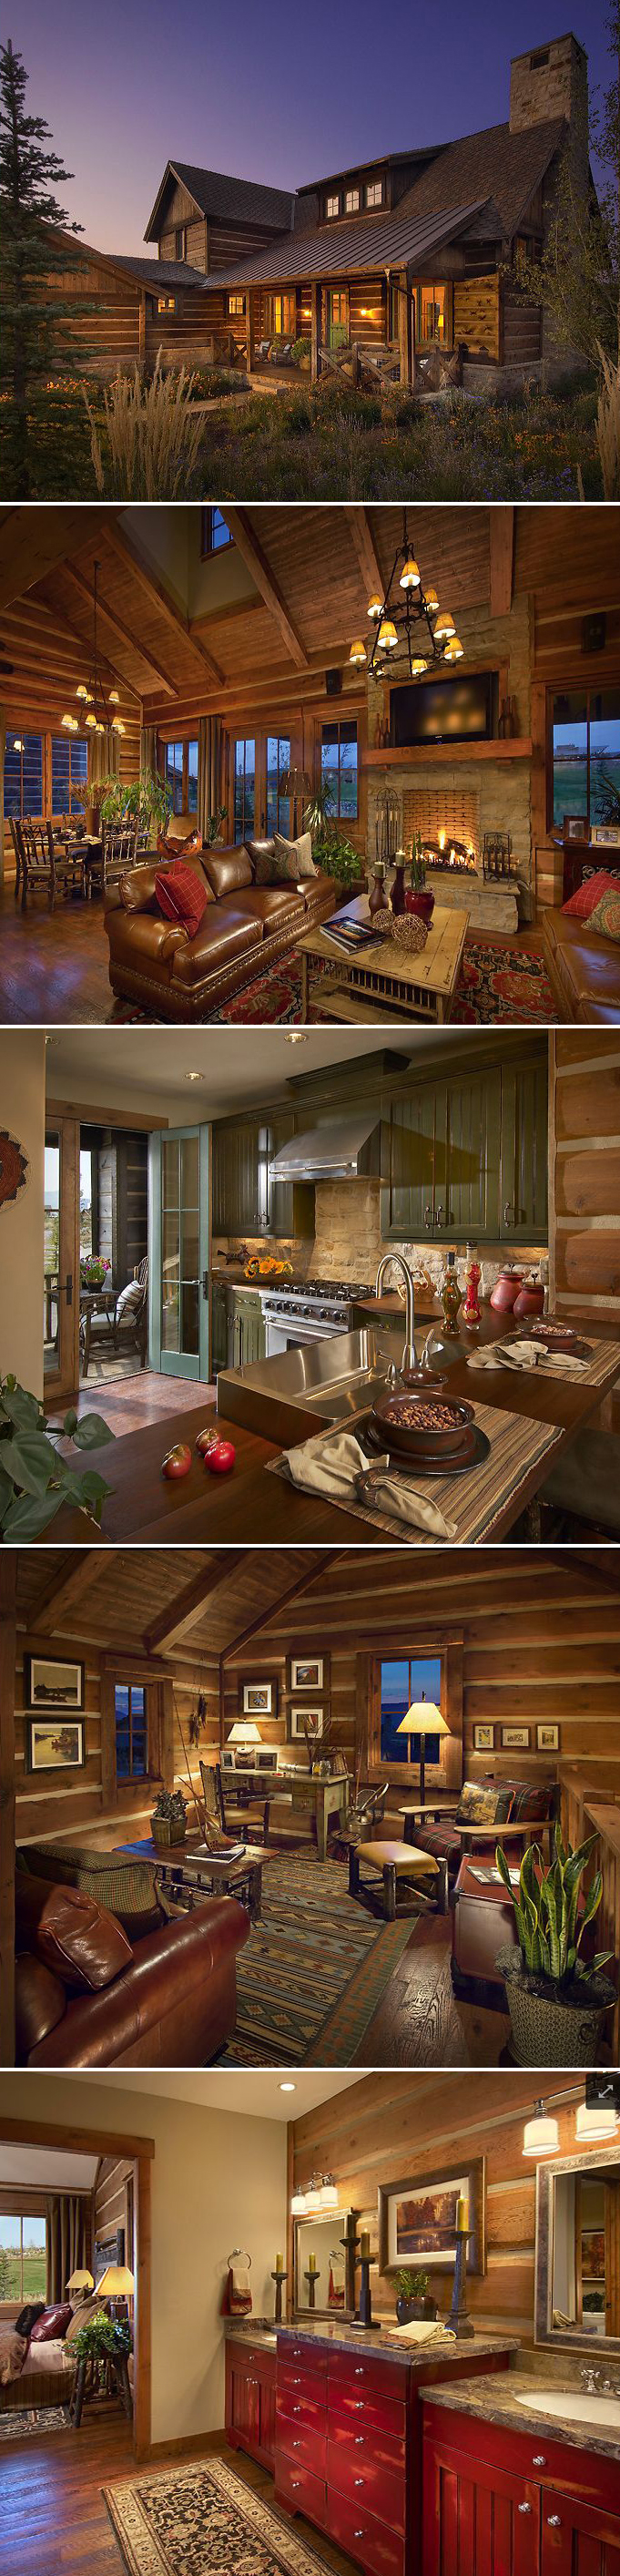 Log Cabin Design Ideas interior design log home design app images about log cabin log cabin design ideas Cse Associates